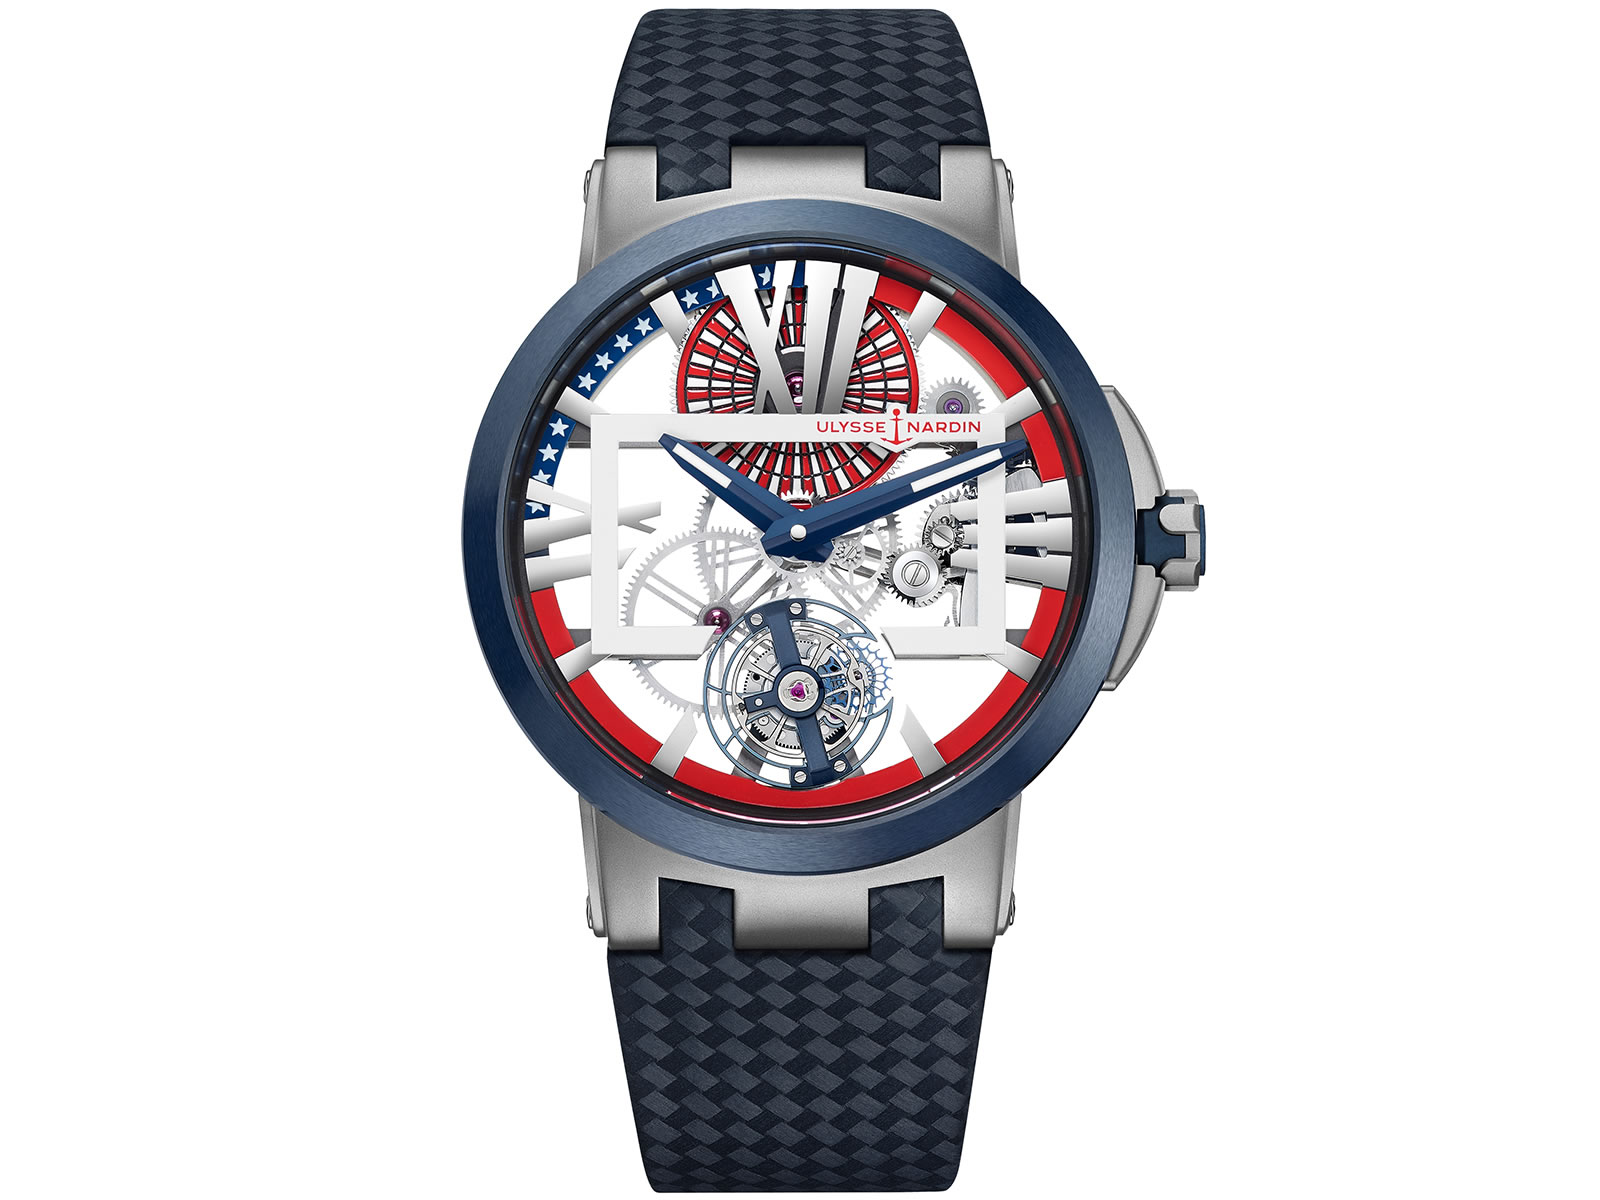 1713-139le-us-ulysse-nardin-executive-skeleton-tourbillon-12-.jpg